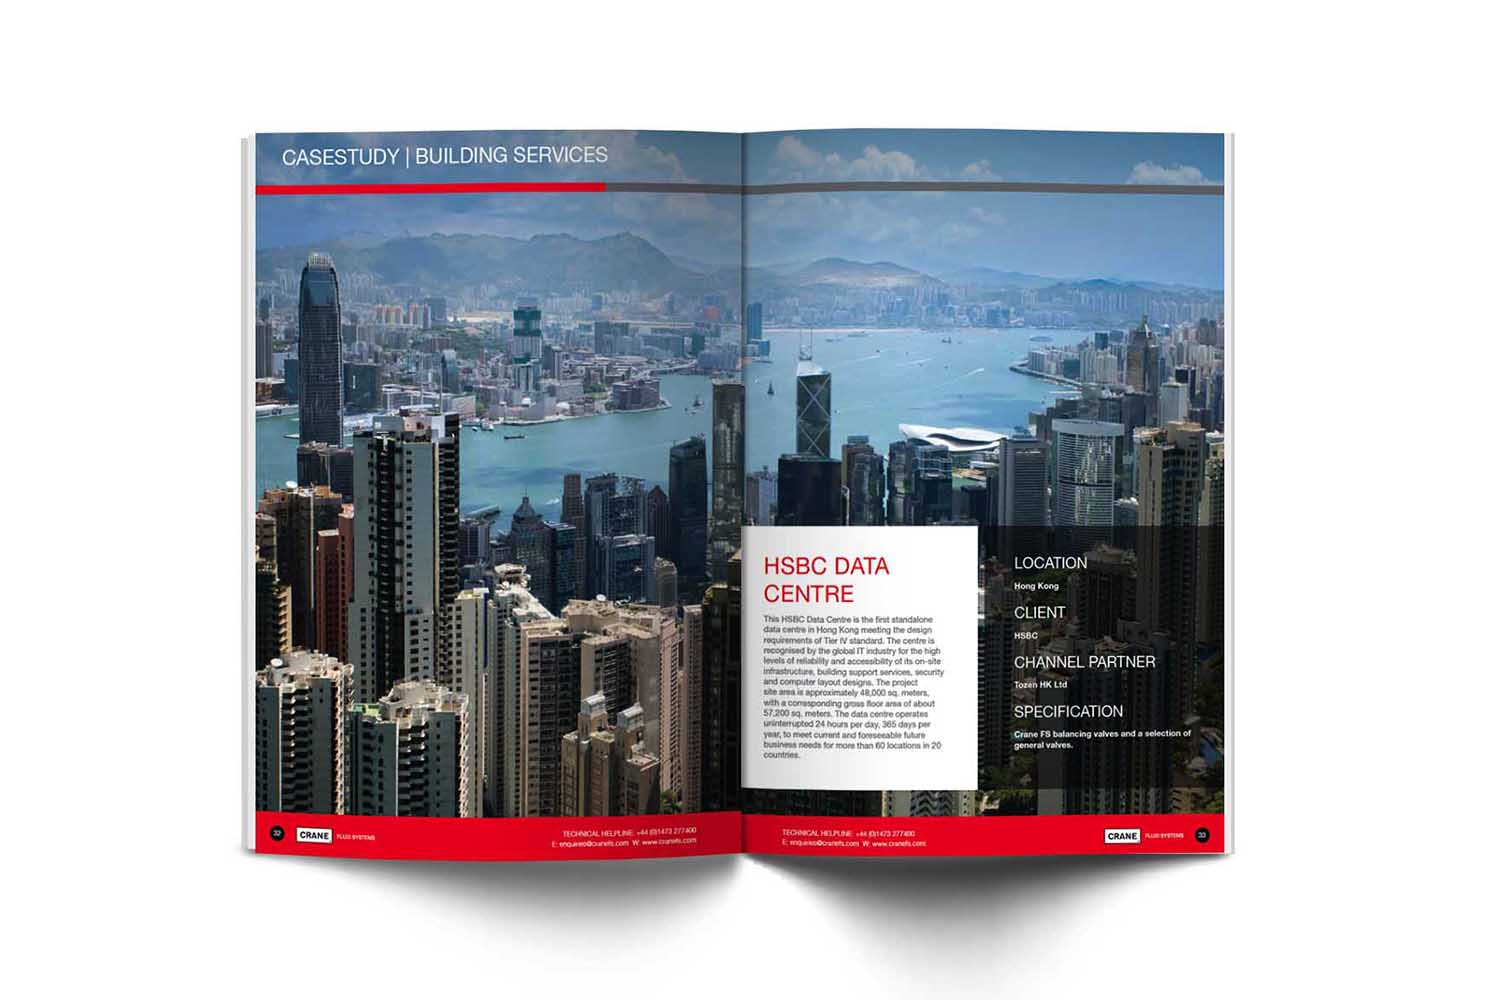 image of brochure casestudy spread from the redesigned crane bs&u brochure dubai